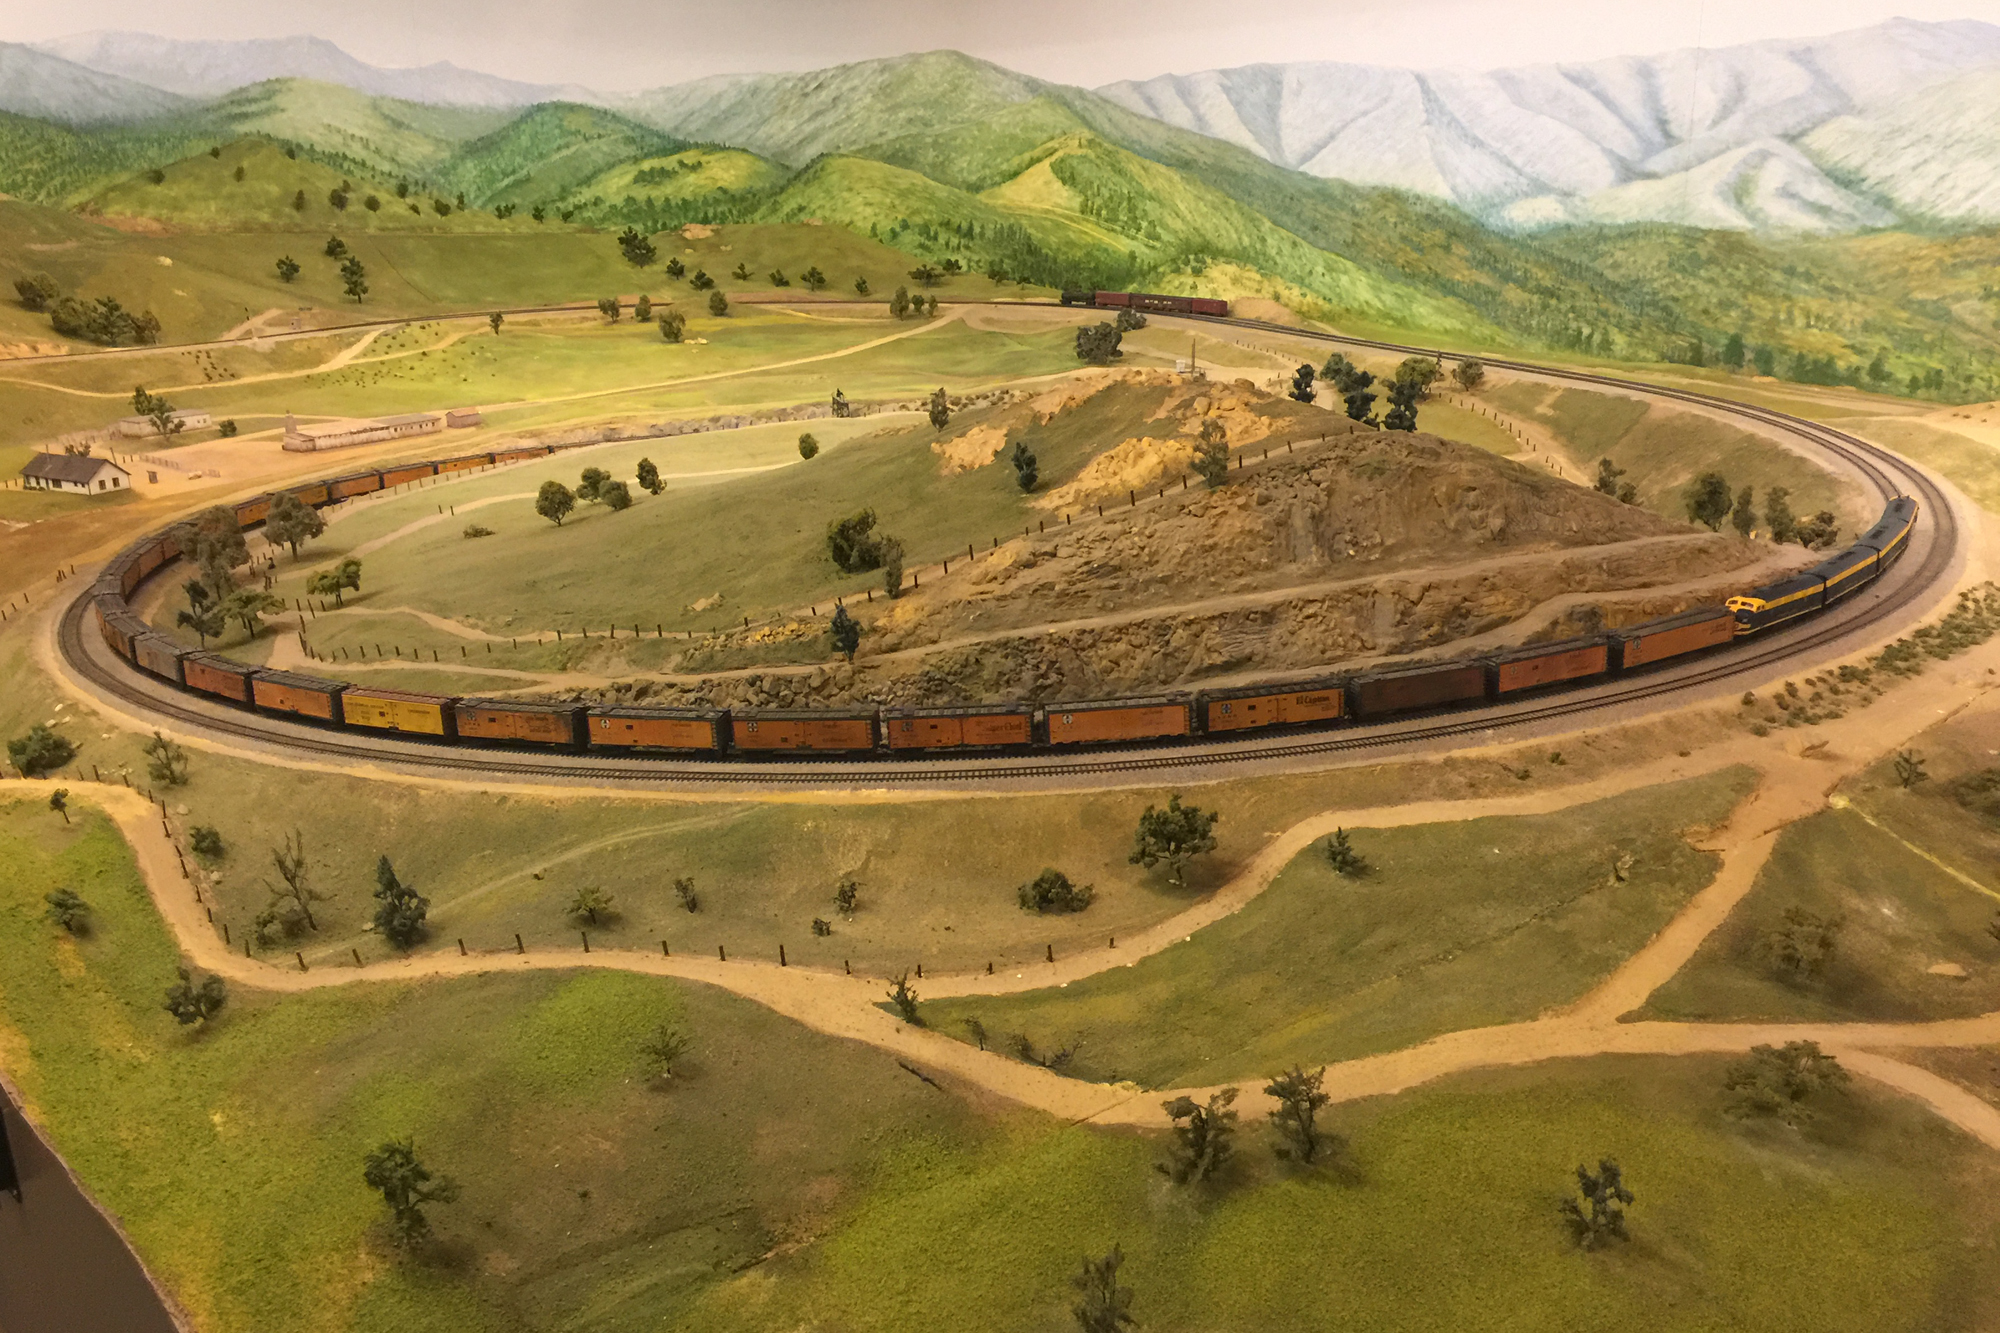 La Mesa Model Railroad Club HO scale with DCC and Sound layout.